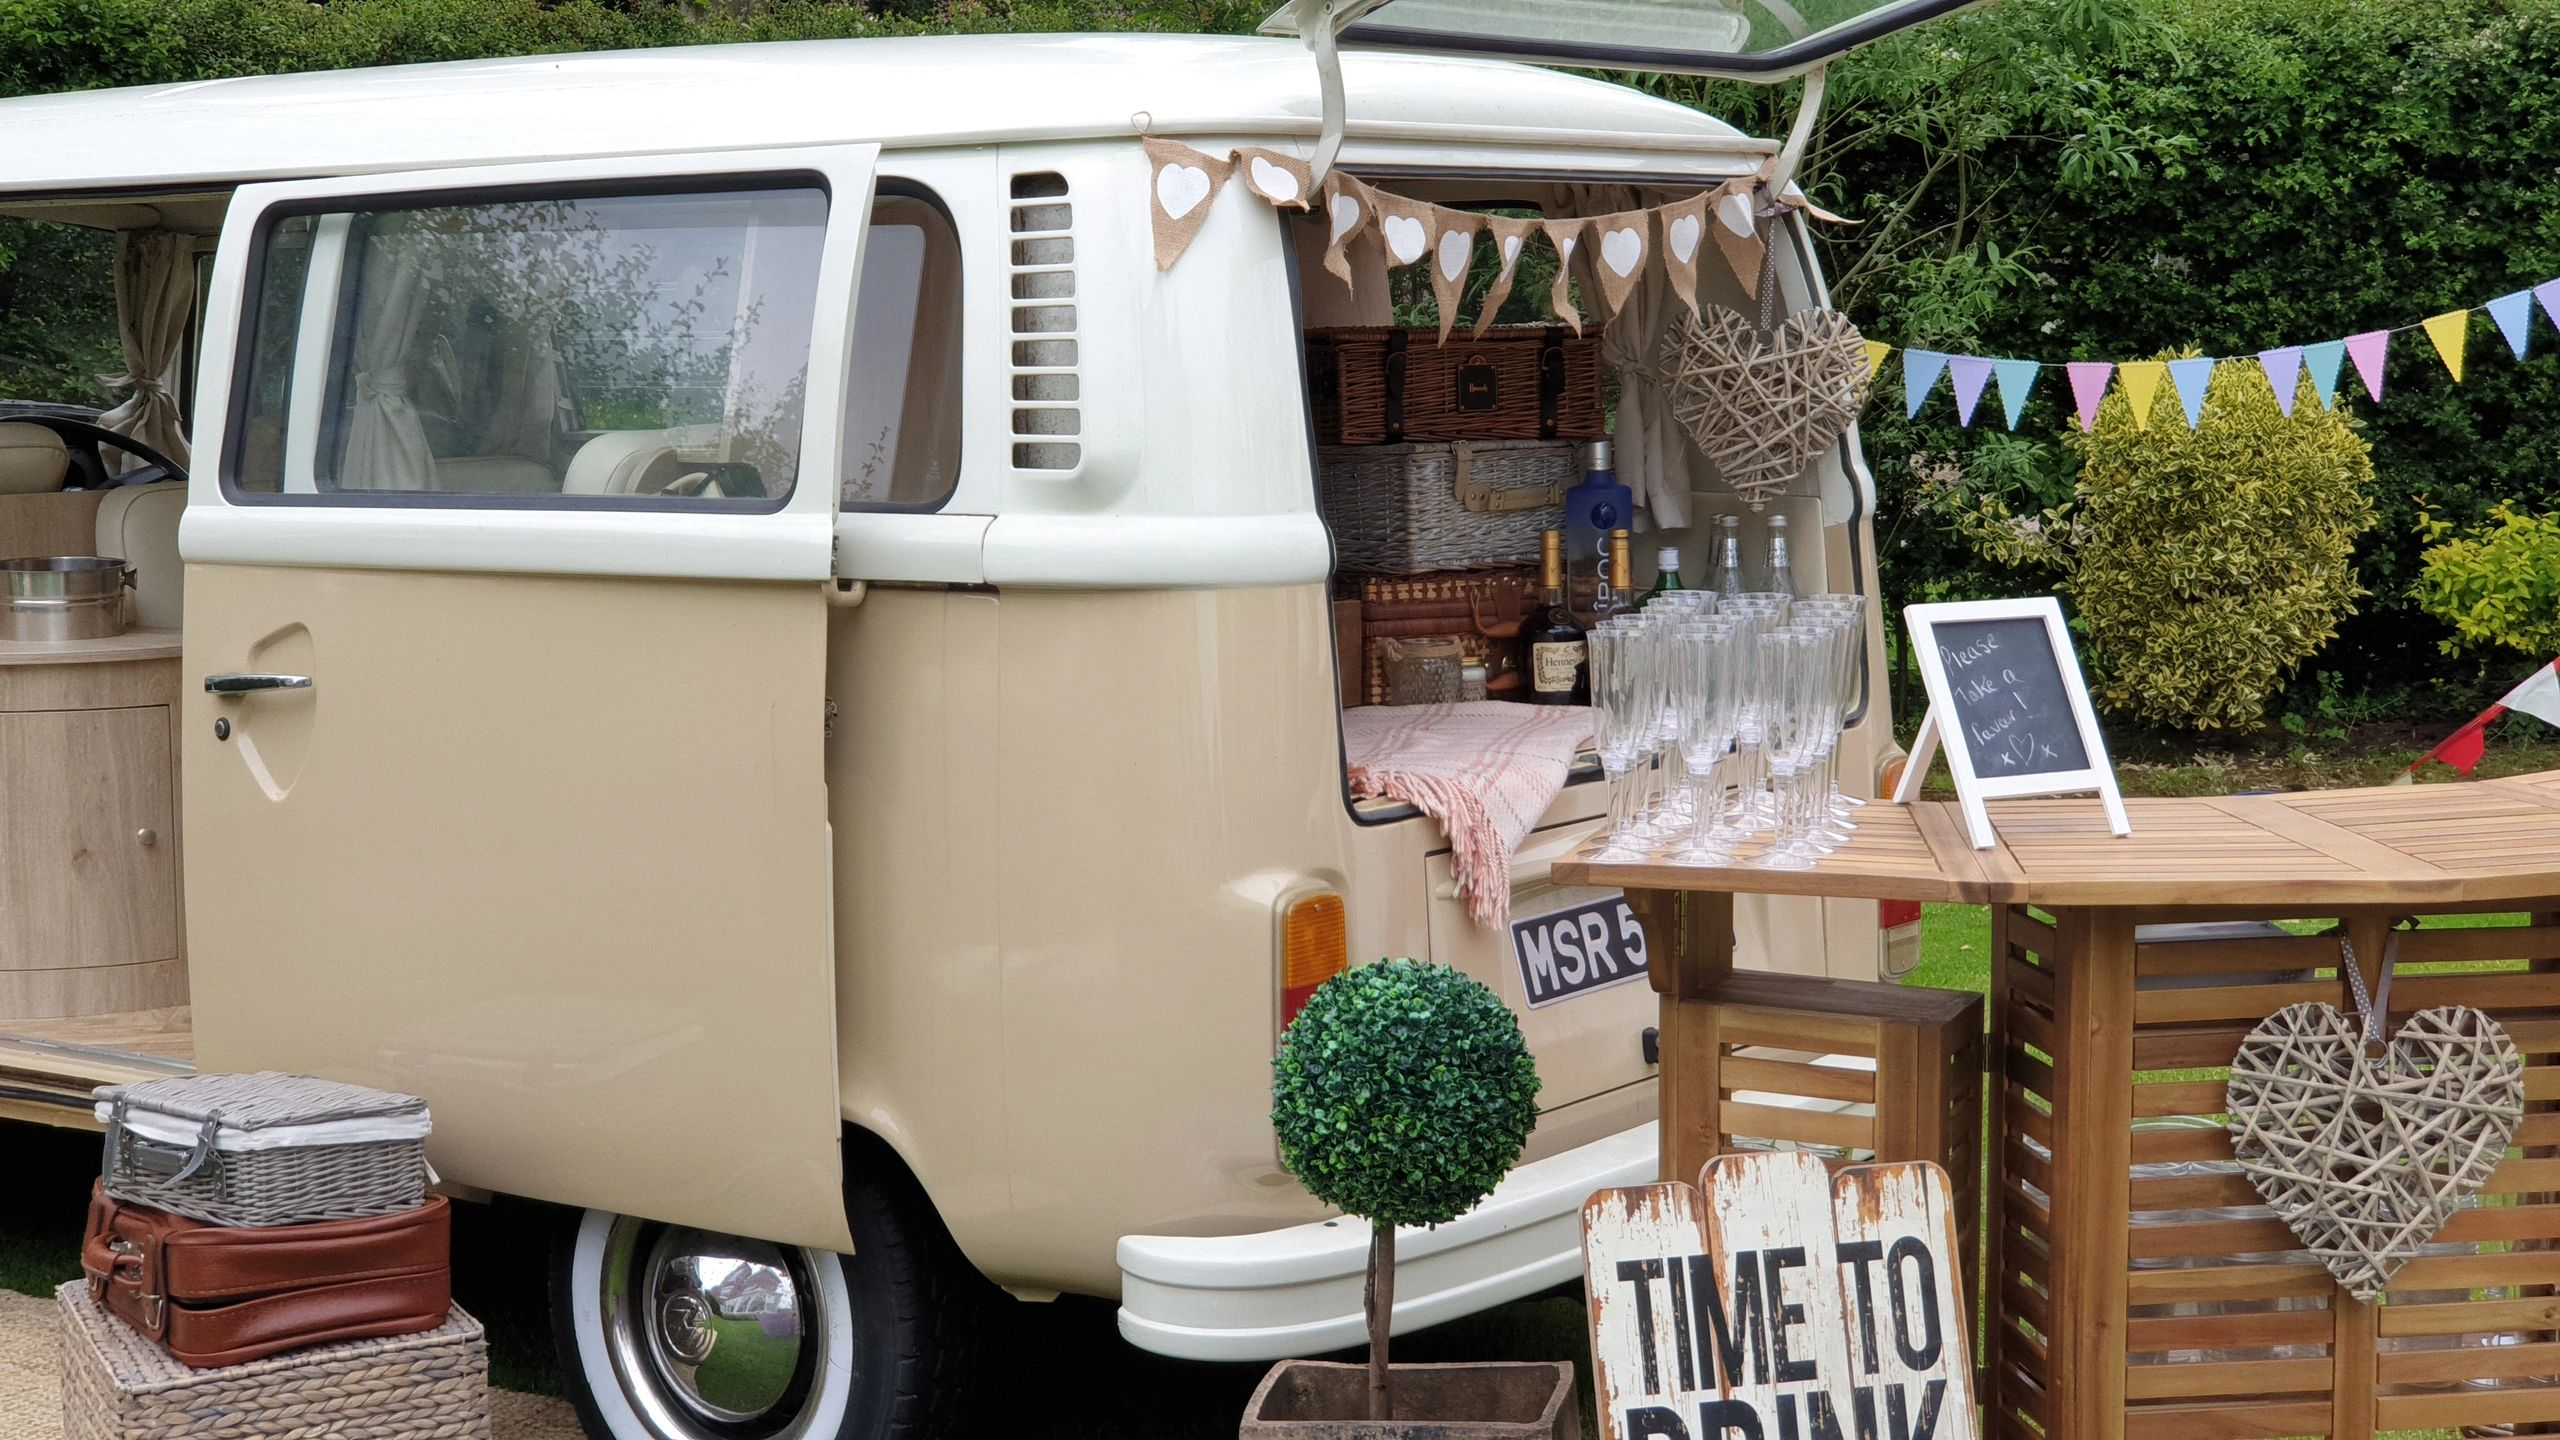 VW campervan Wedding limo mobile bar prosecco champagne bar lancashire manchester bury photo booth